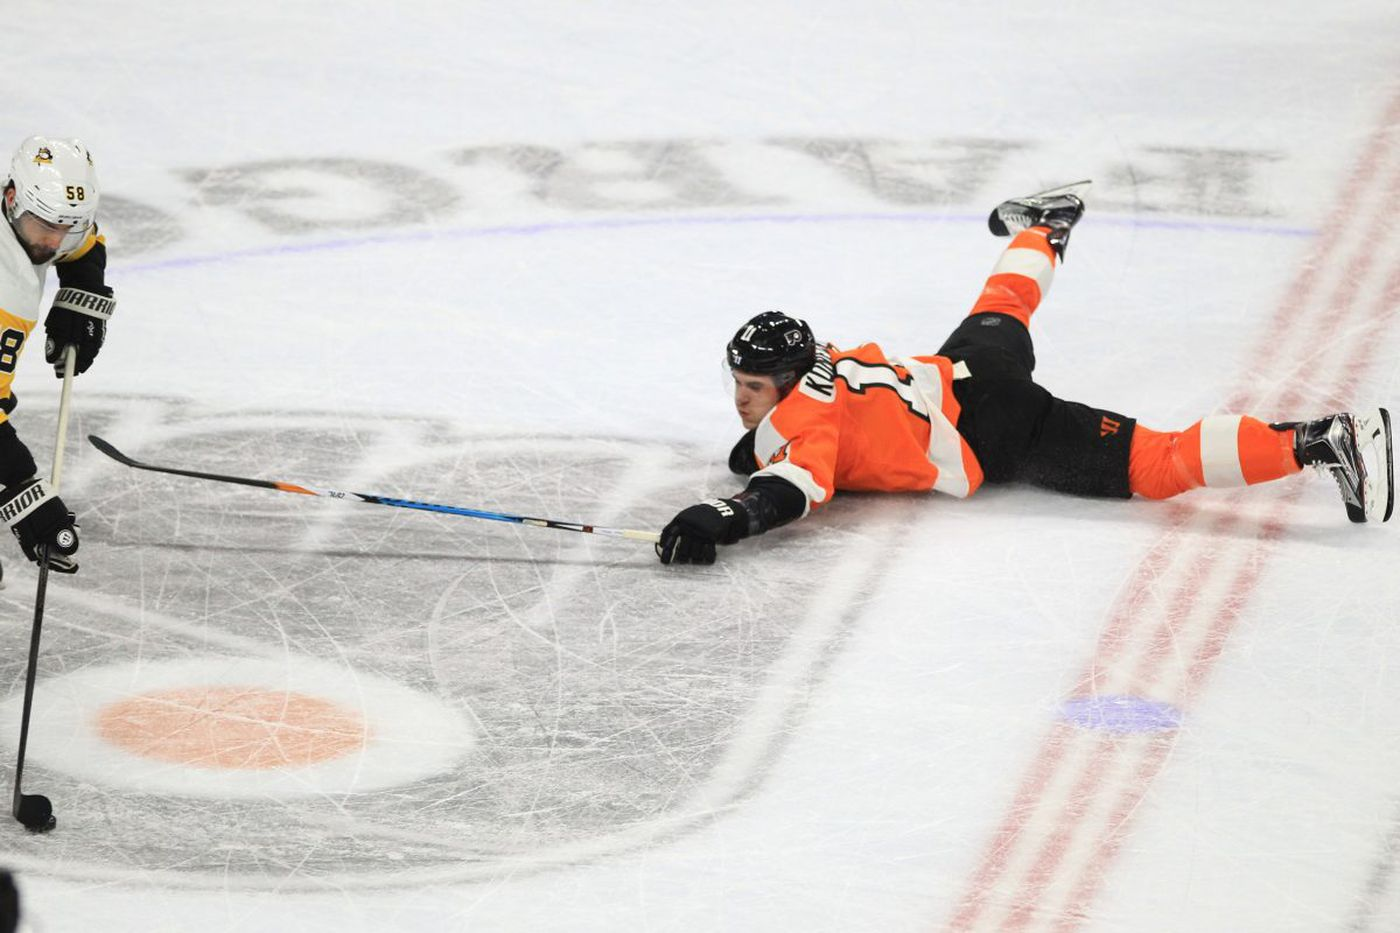 Flyers fail to keep momentum going, fall to Penguins, 5-1